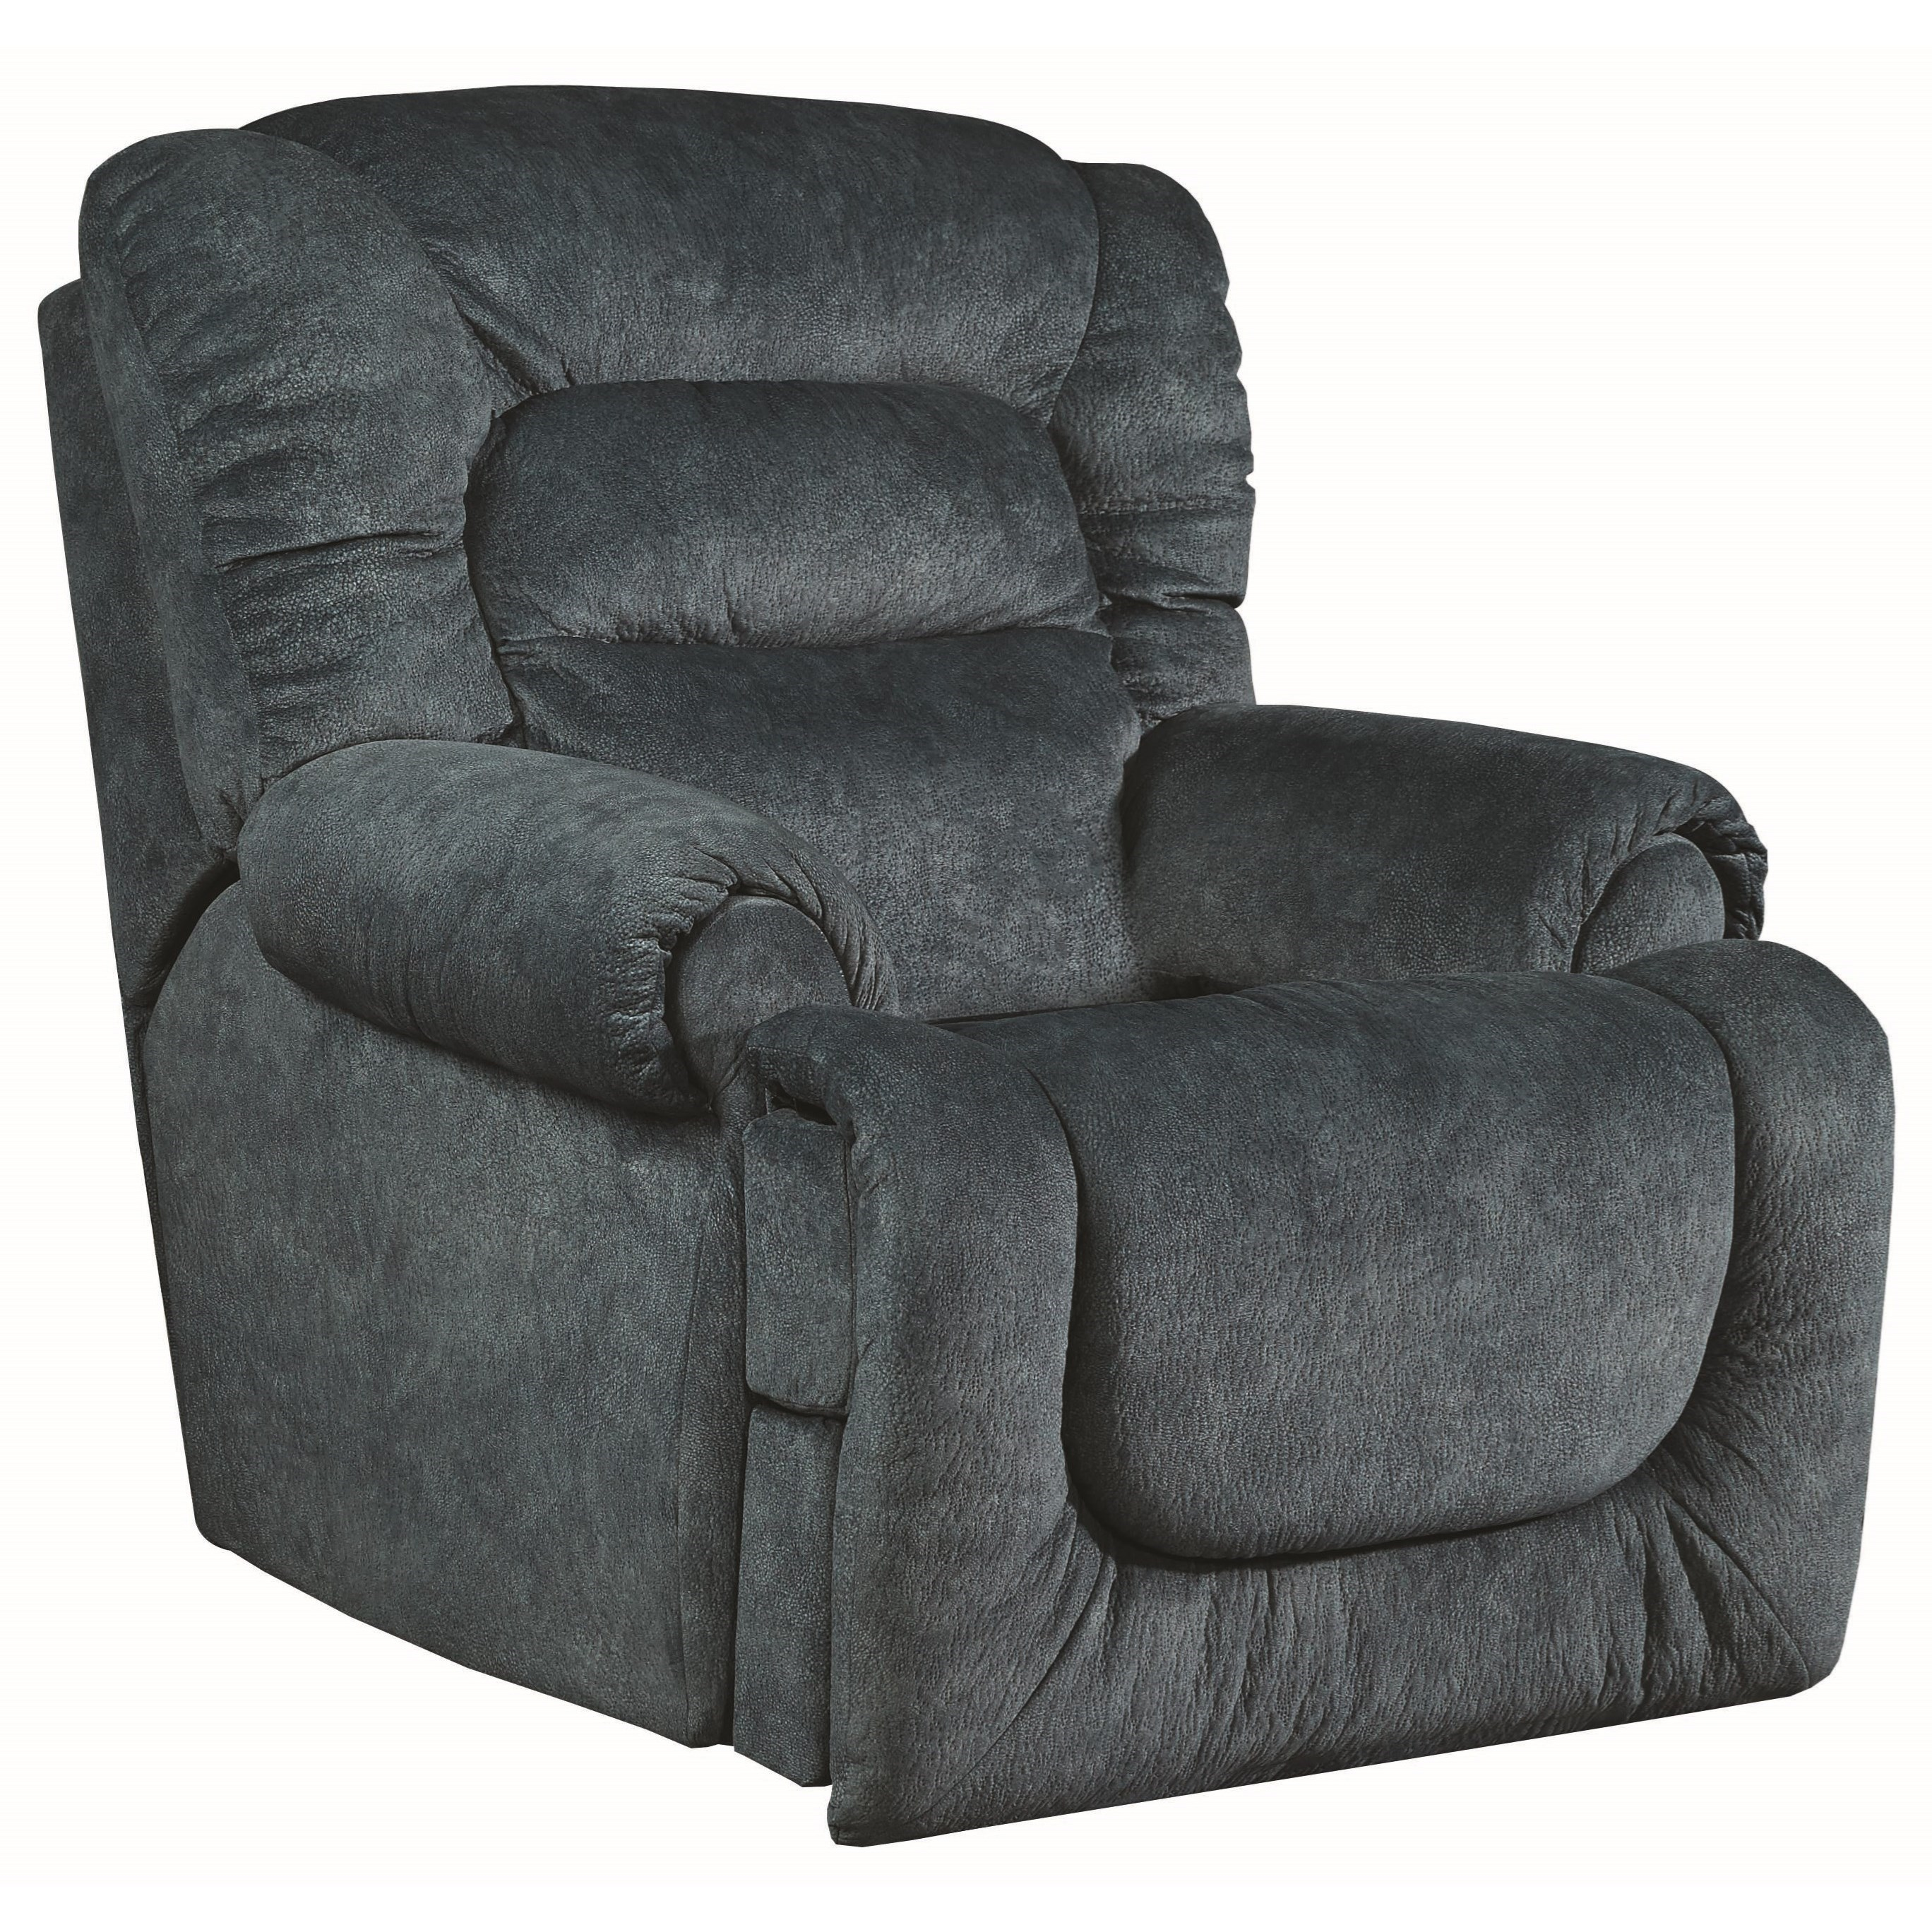 All Star Pwr Headrest Big Man Wall Recliner w/ SoCozi by Southern Motion at Suburban Furniture